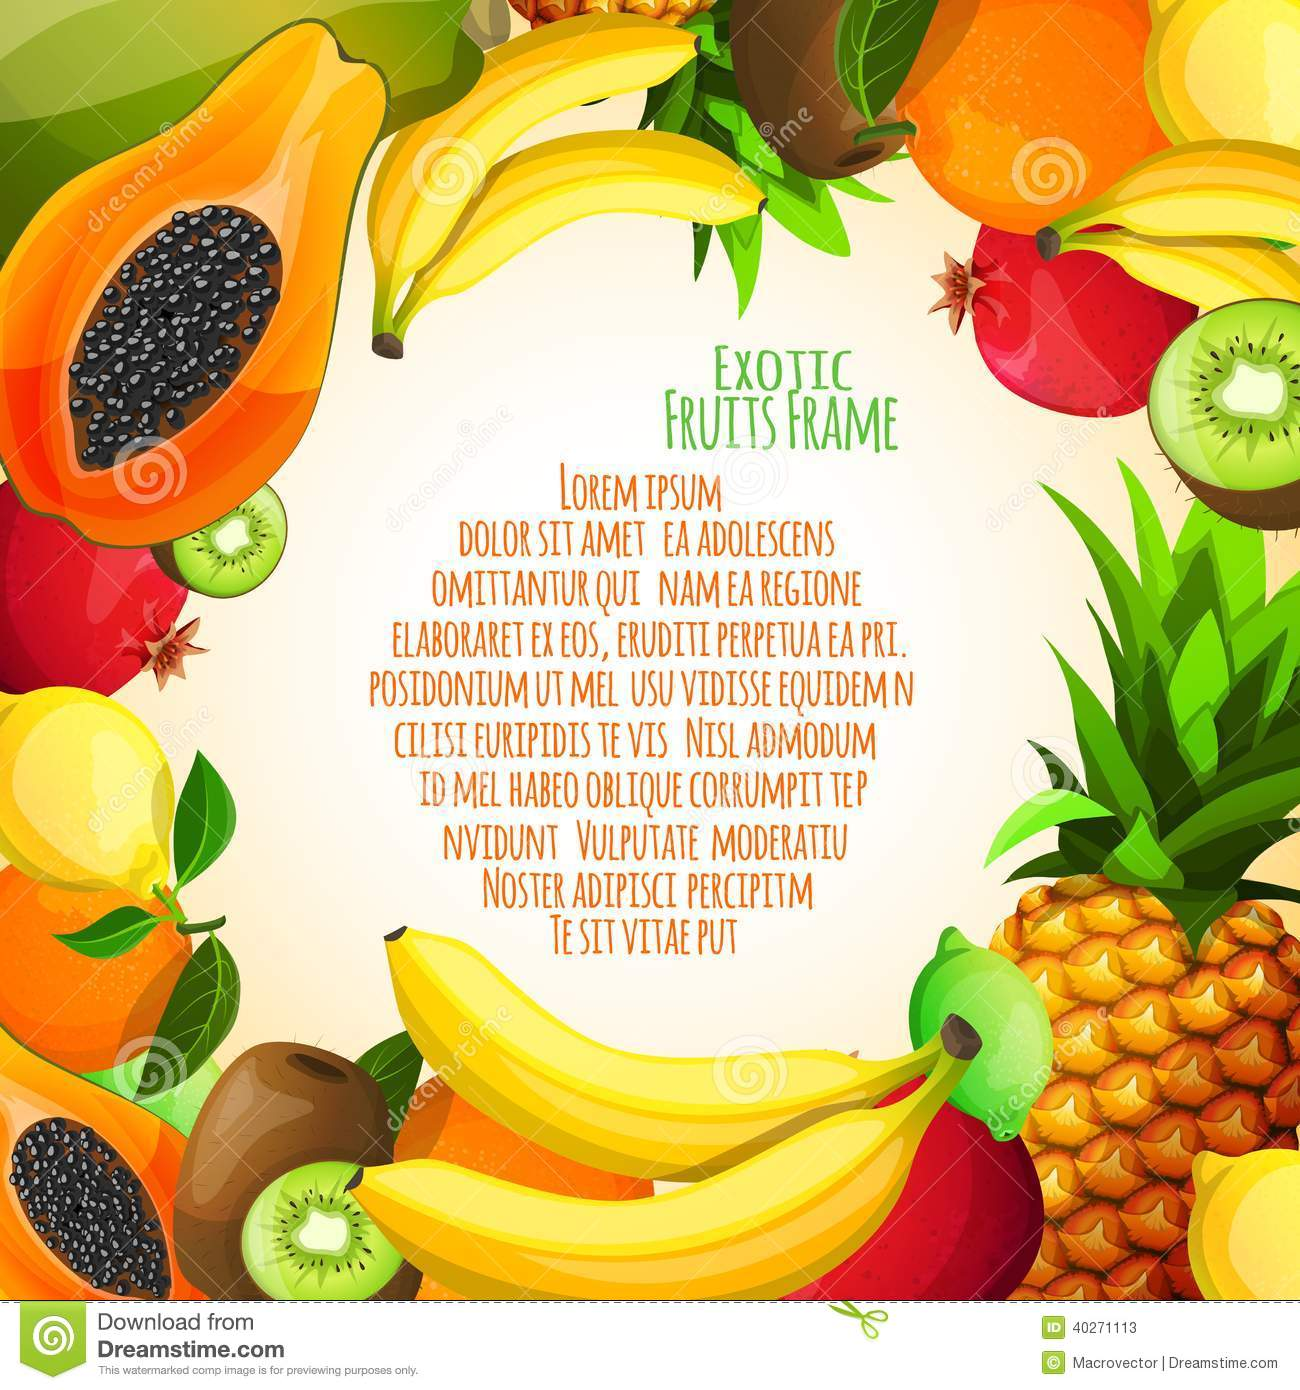 exotic fruits frame stock vector